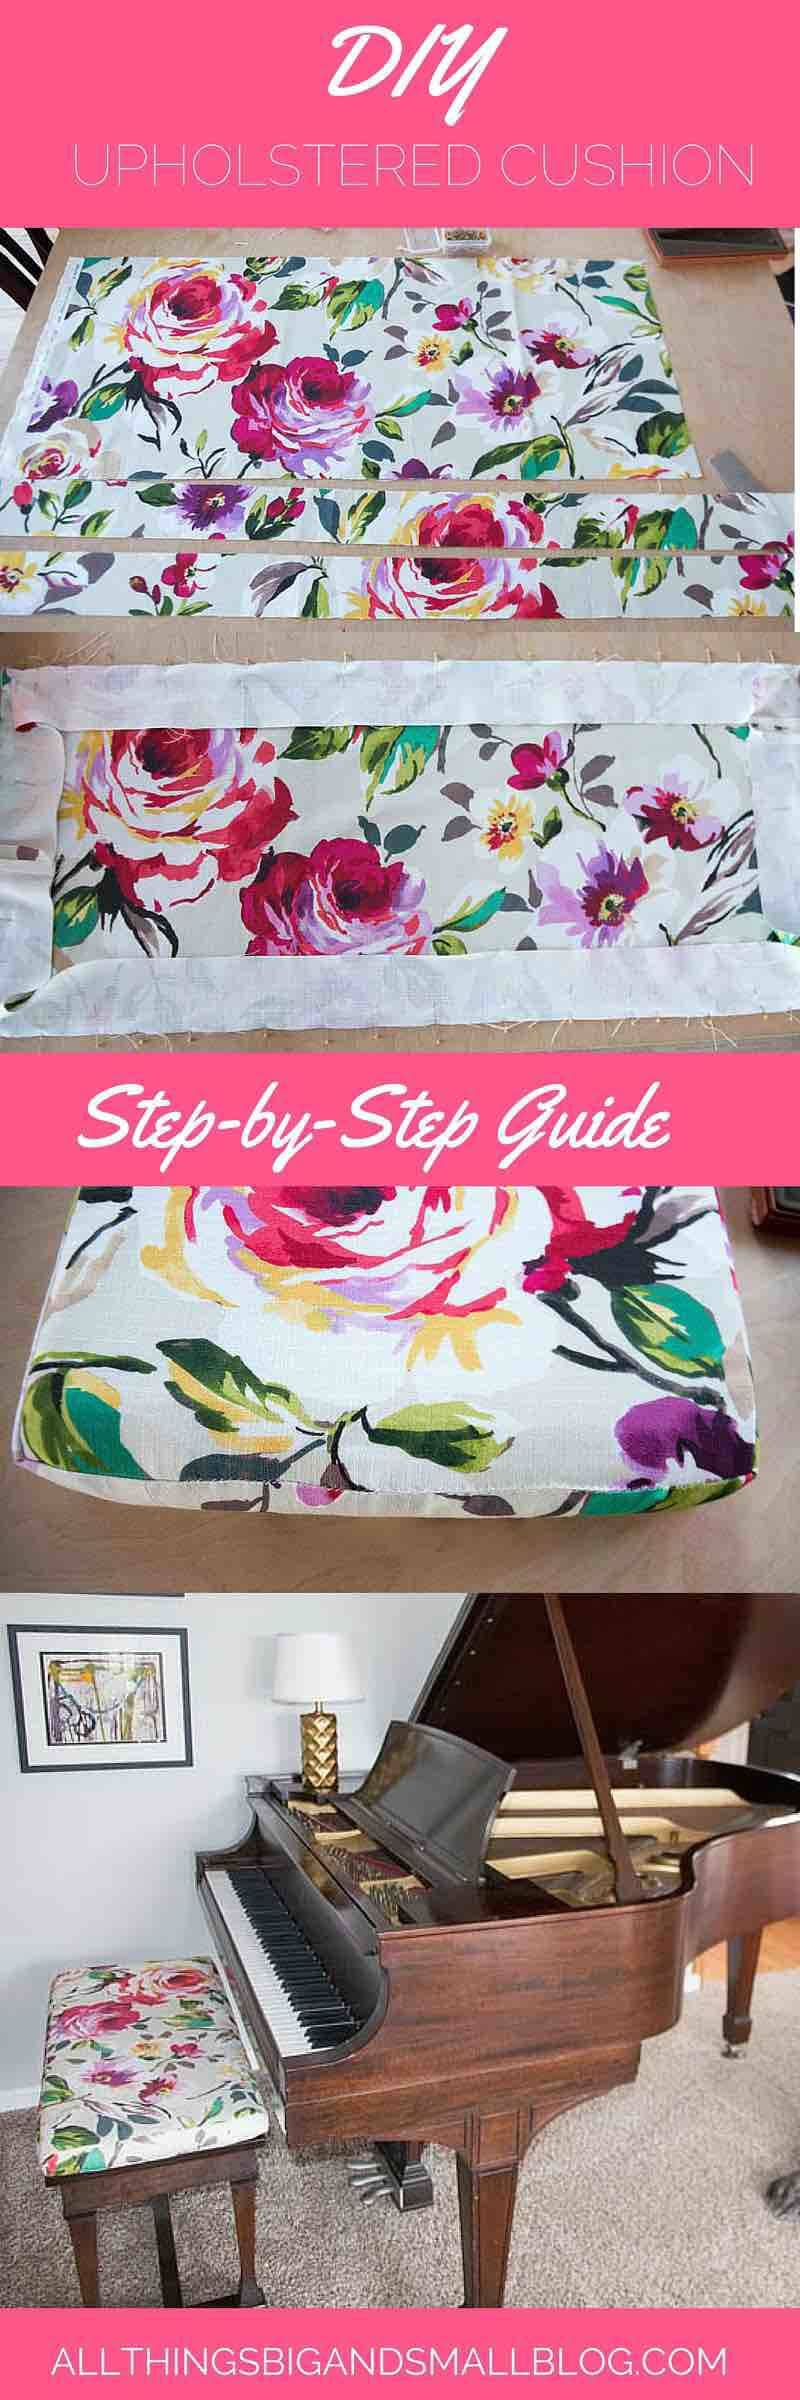 DIY Upholstered Cushion- All Things Big and Small Blog- a budget-friendly step-by-step tutorial to help you create a beautiful home on a budget- decorating doesn't have to be expensive!